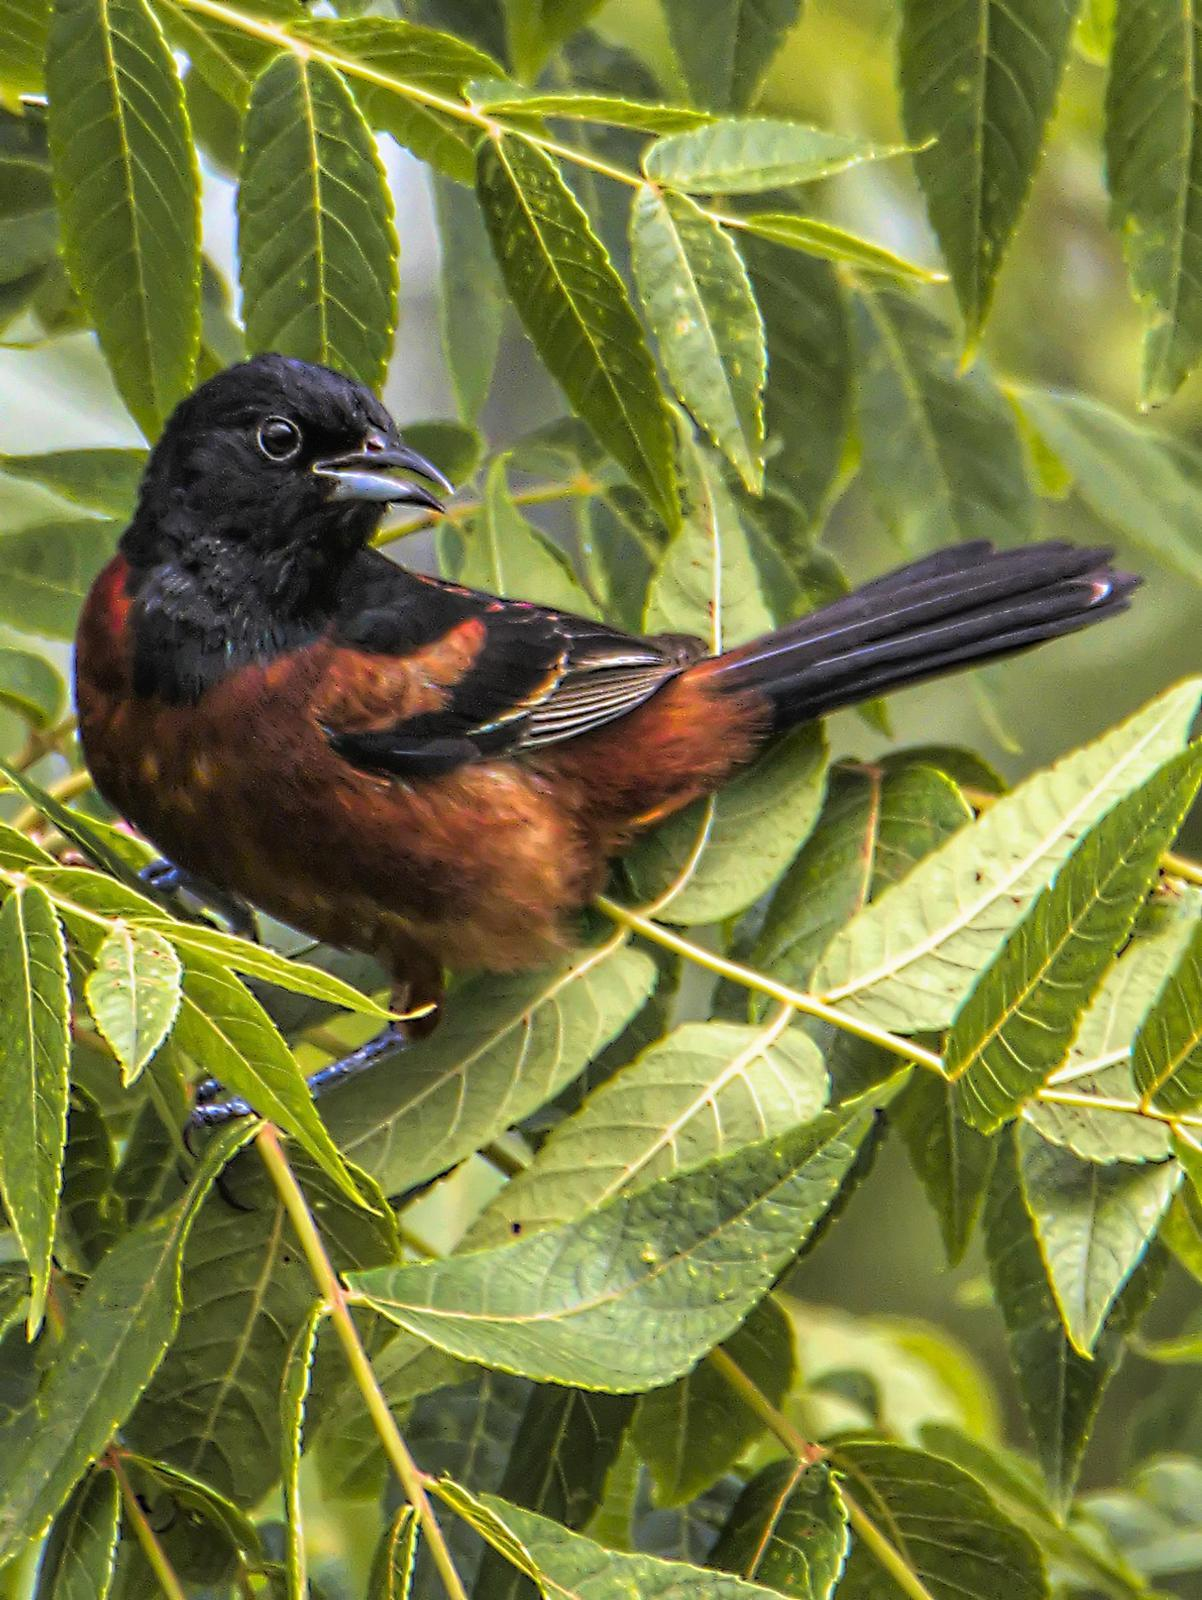 Orchard Oriole Photo by Dan Tallman